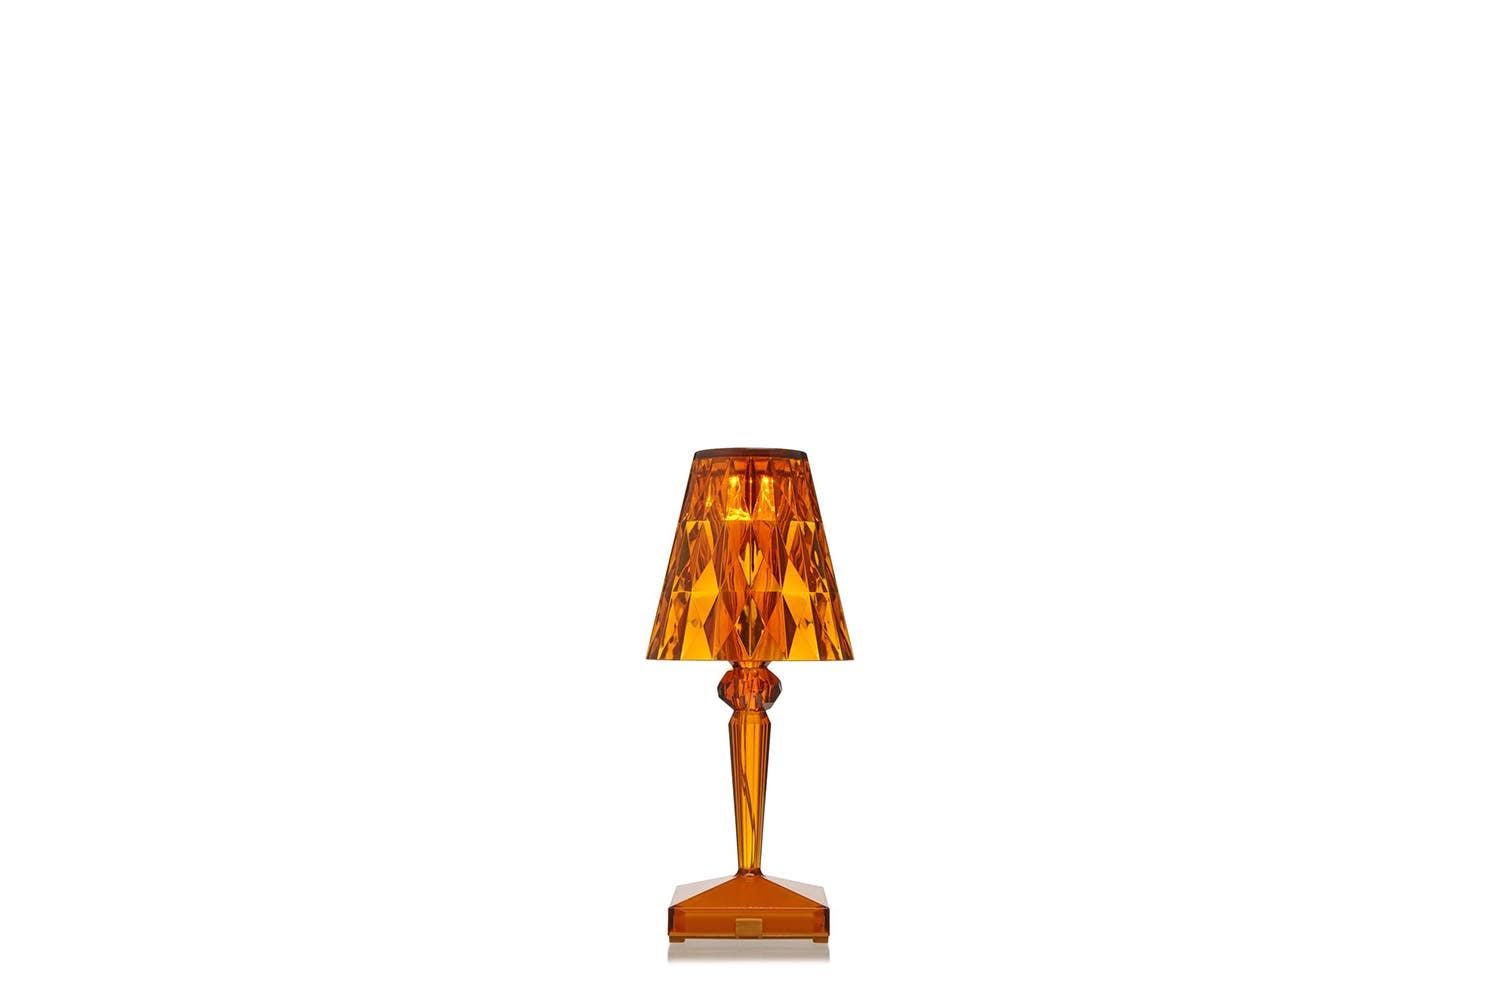 battery table lamp by ferruccio laviani for kartell space furniture battery lamp ferruccio laviani monday